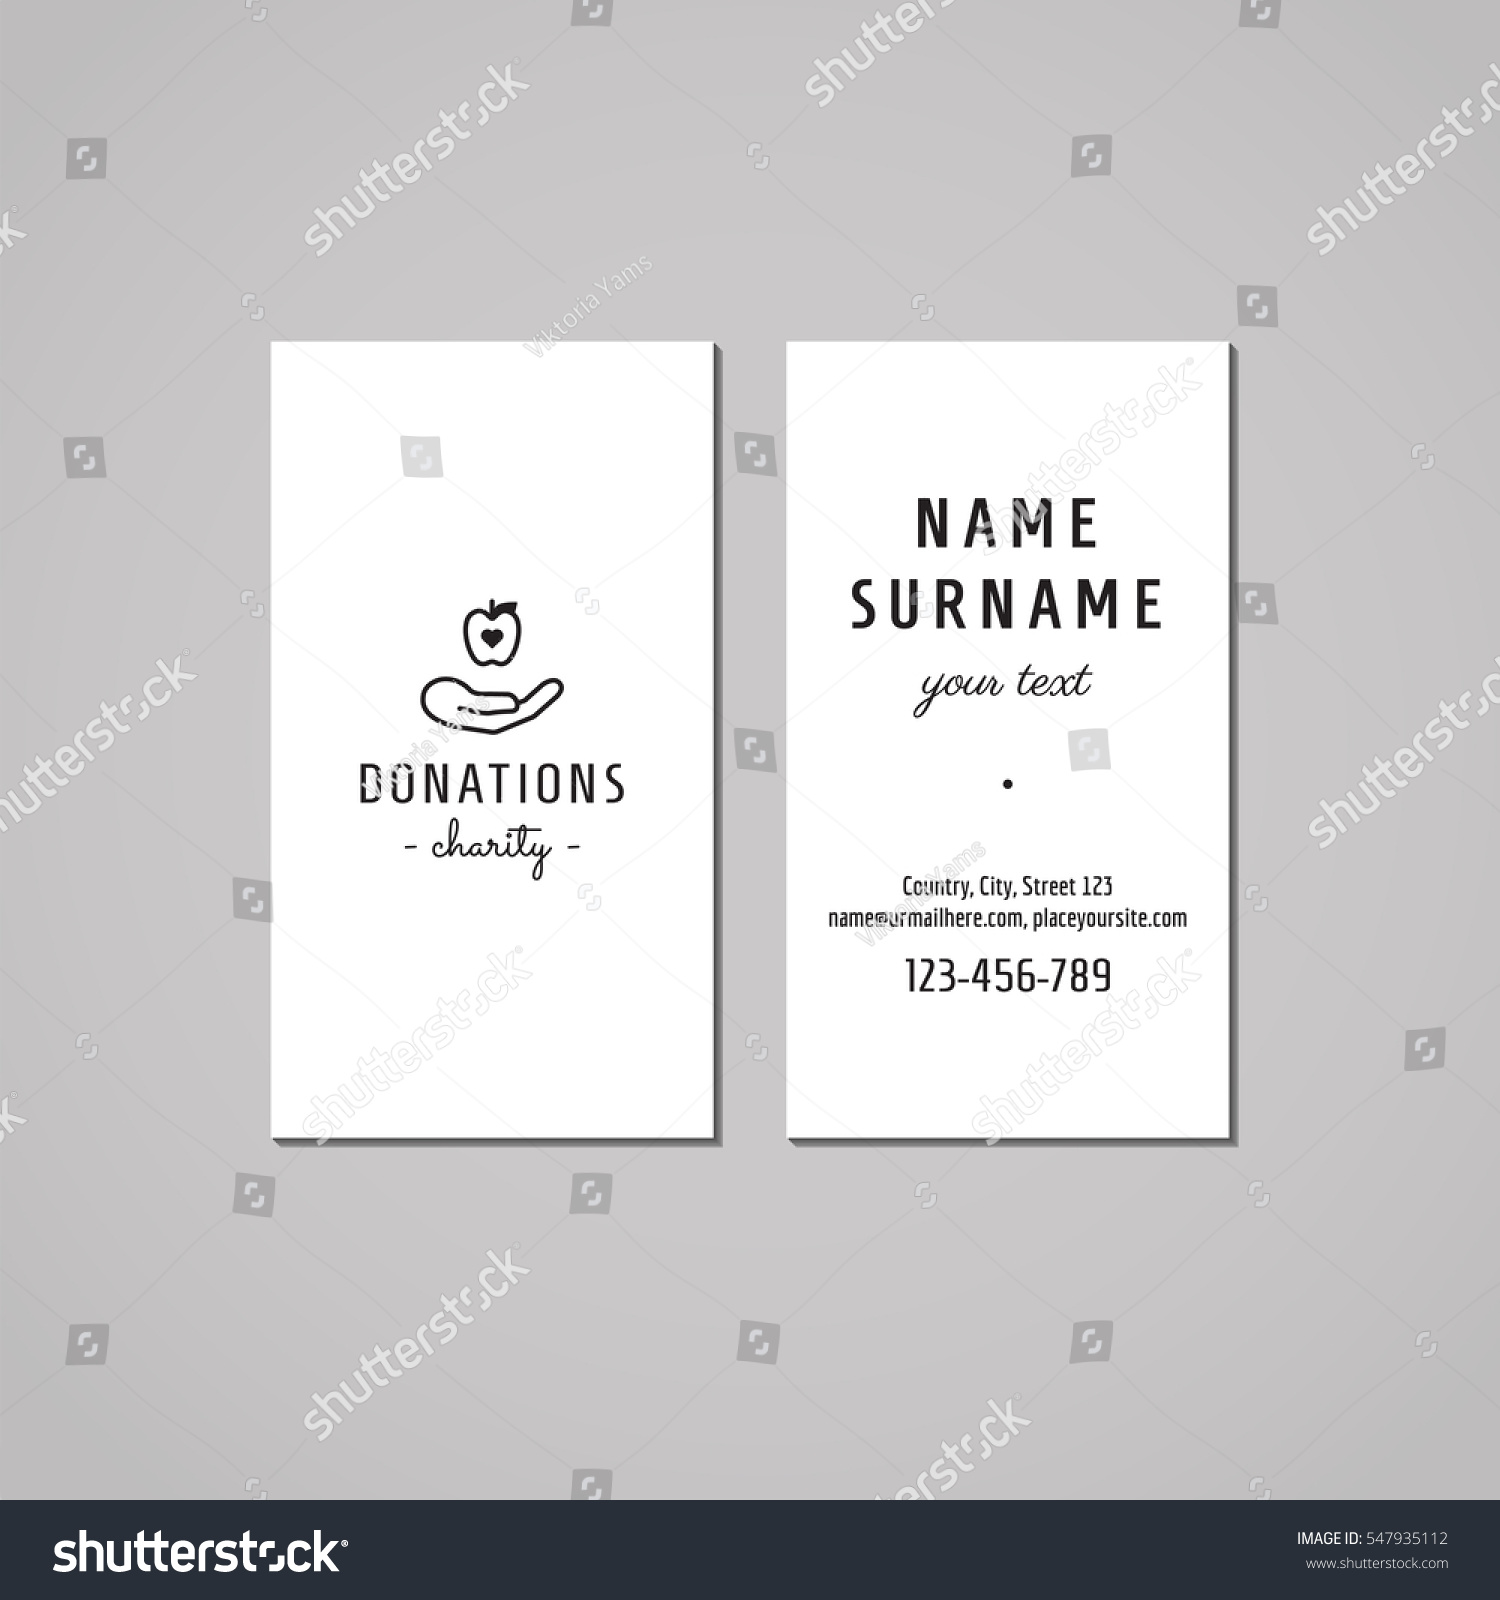 Donations Charity Business Card Design Concept Stock Vector ...